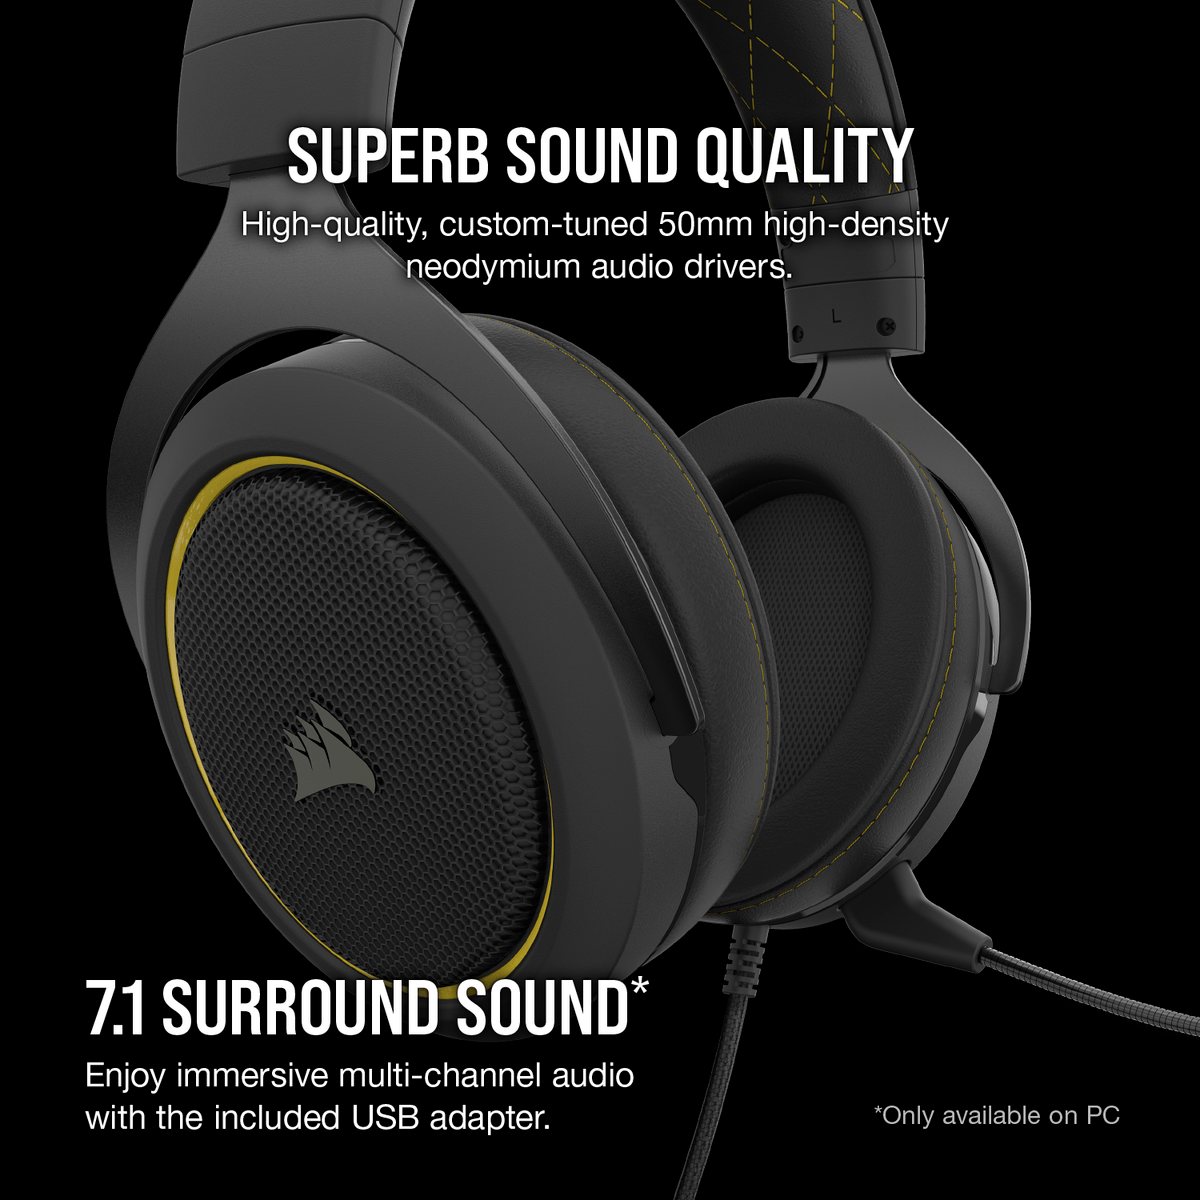 Corsair HS60 PRO Gaming Headset with 7.1 Surround Sound - Yellow  (CA-9011214-AP)   Centre Com : Best PC Hardware Prices!